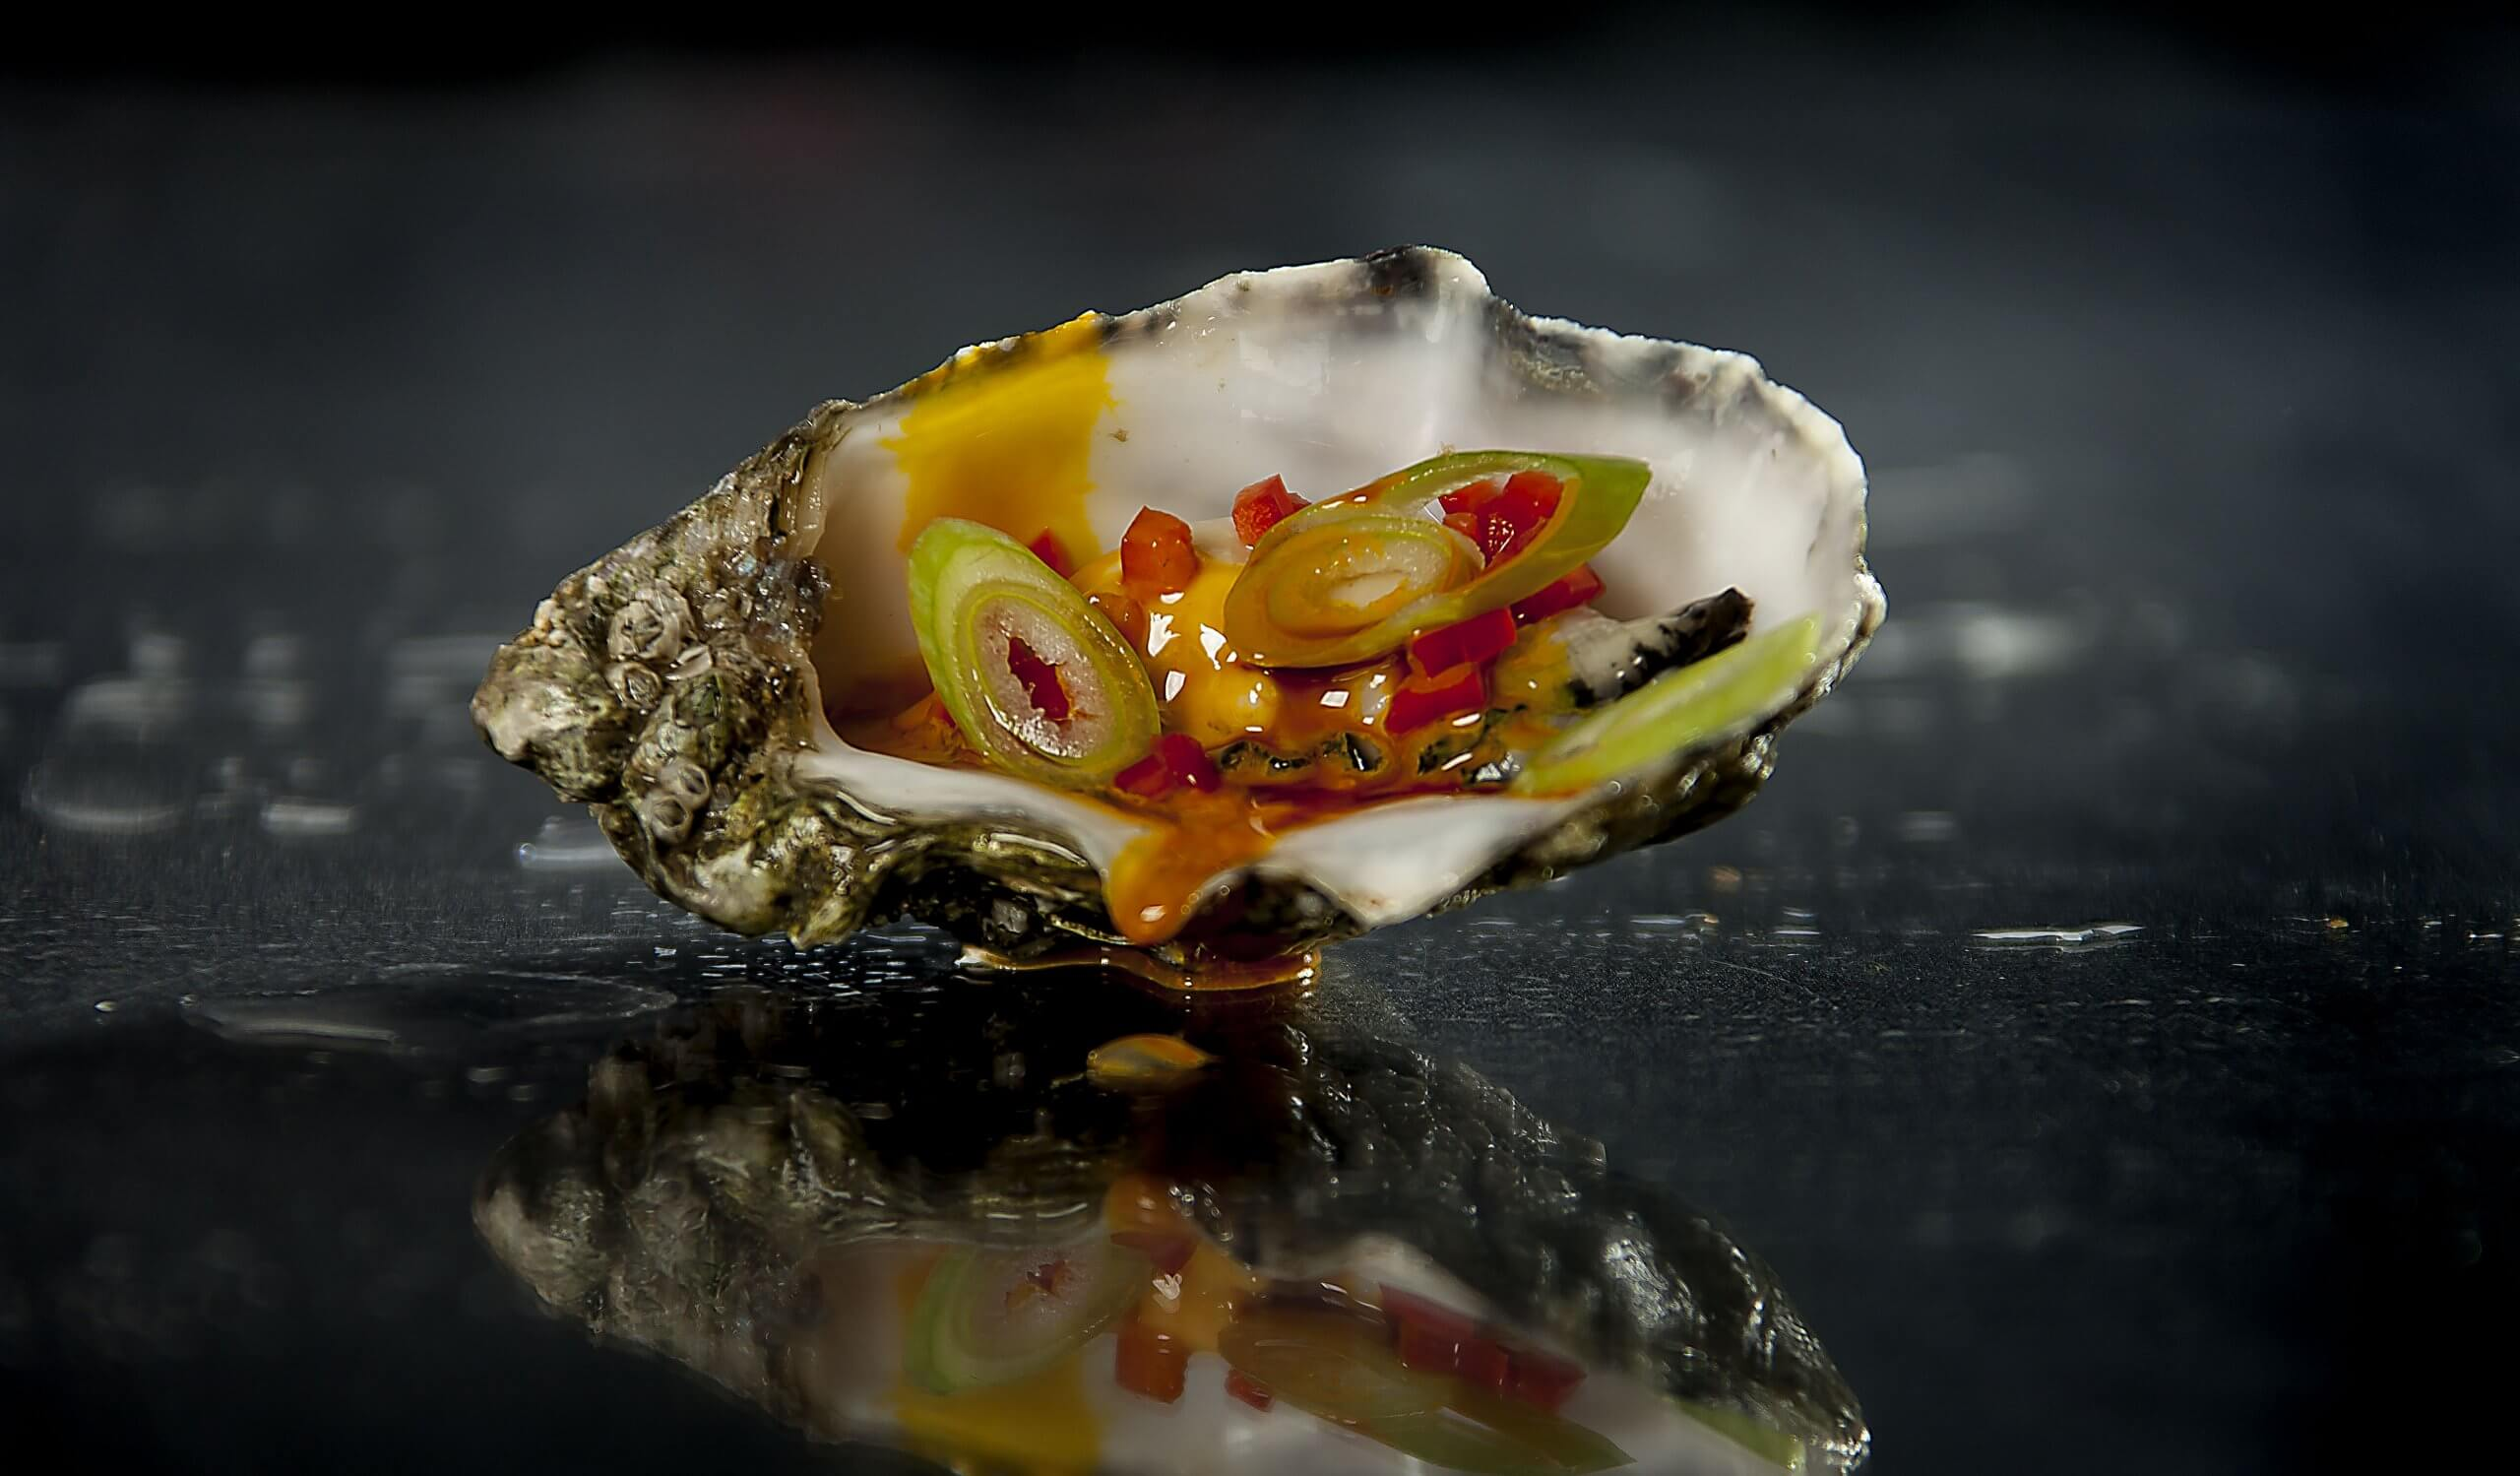 Oesters Oosters